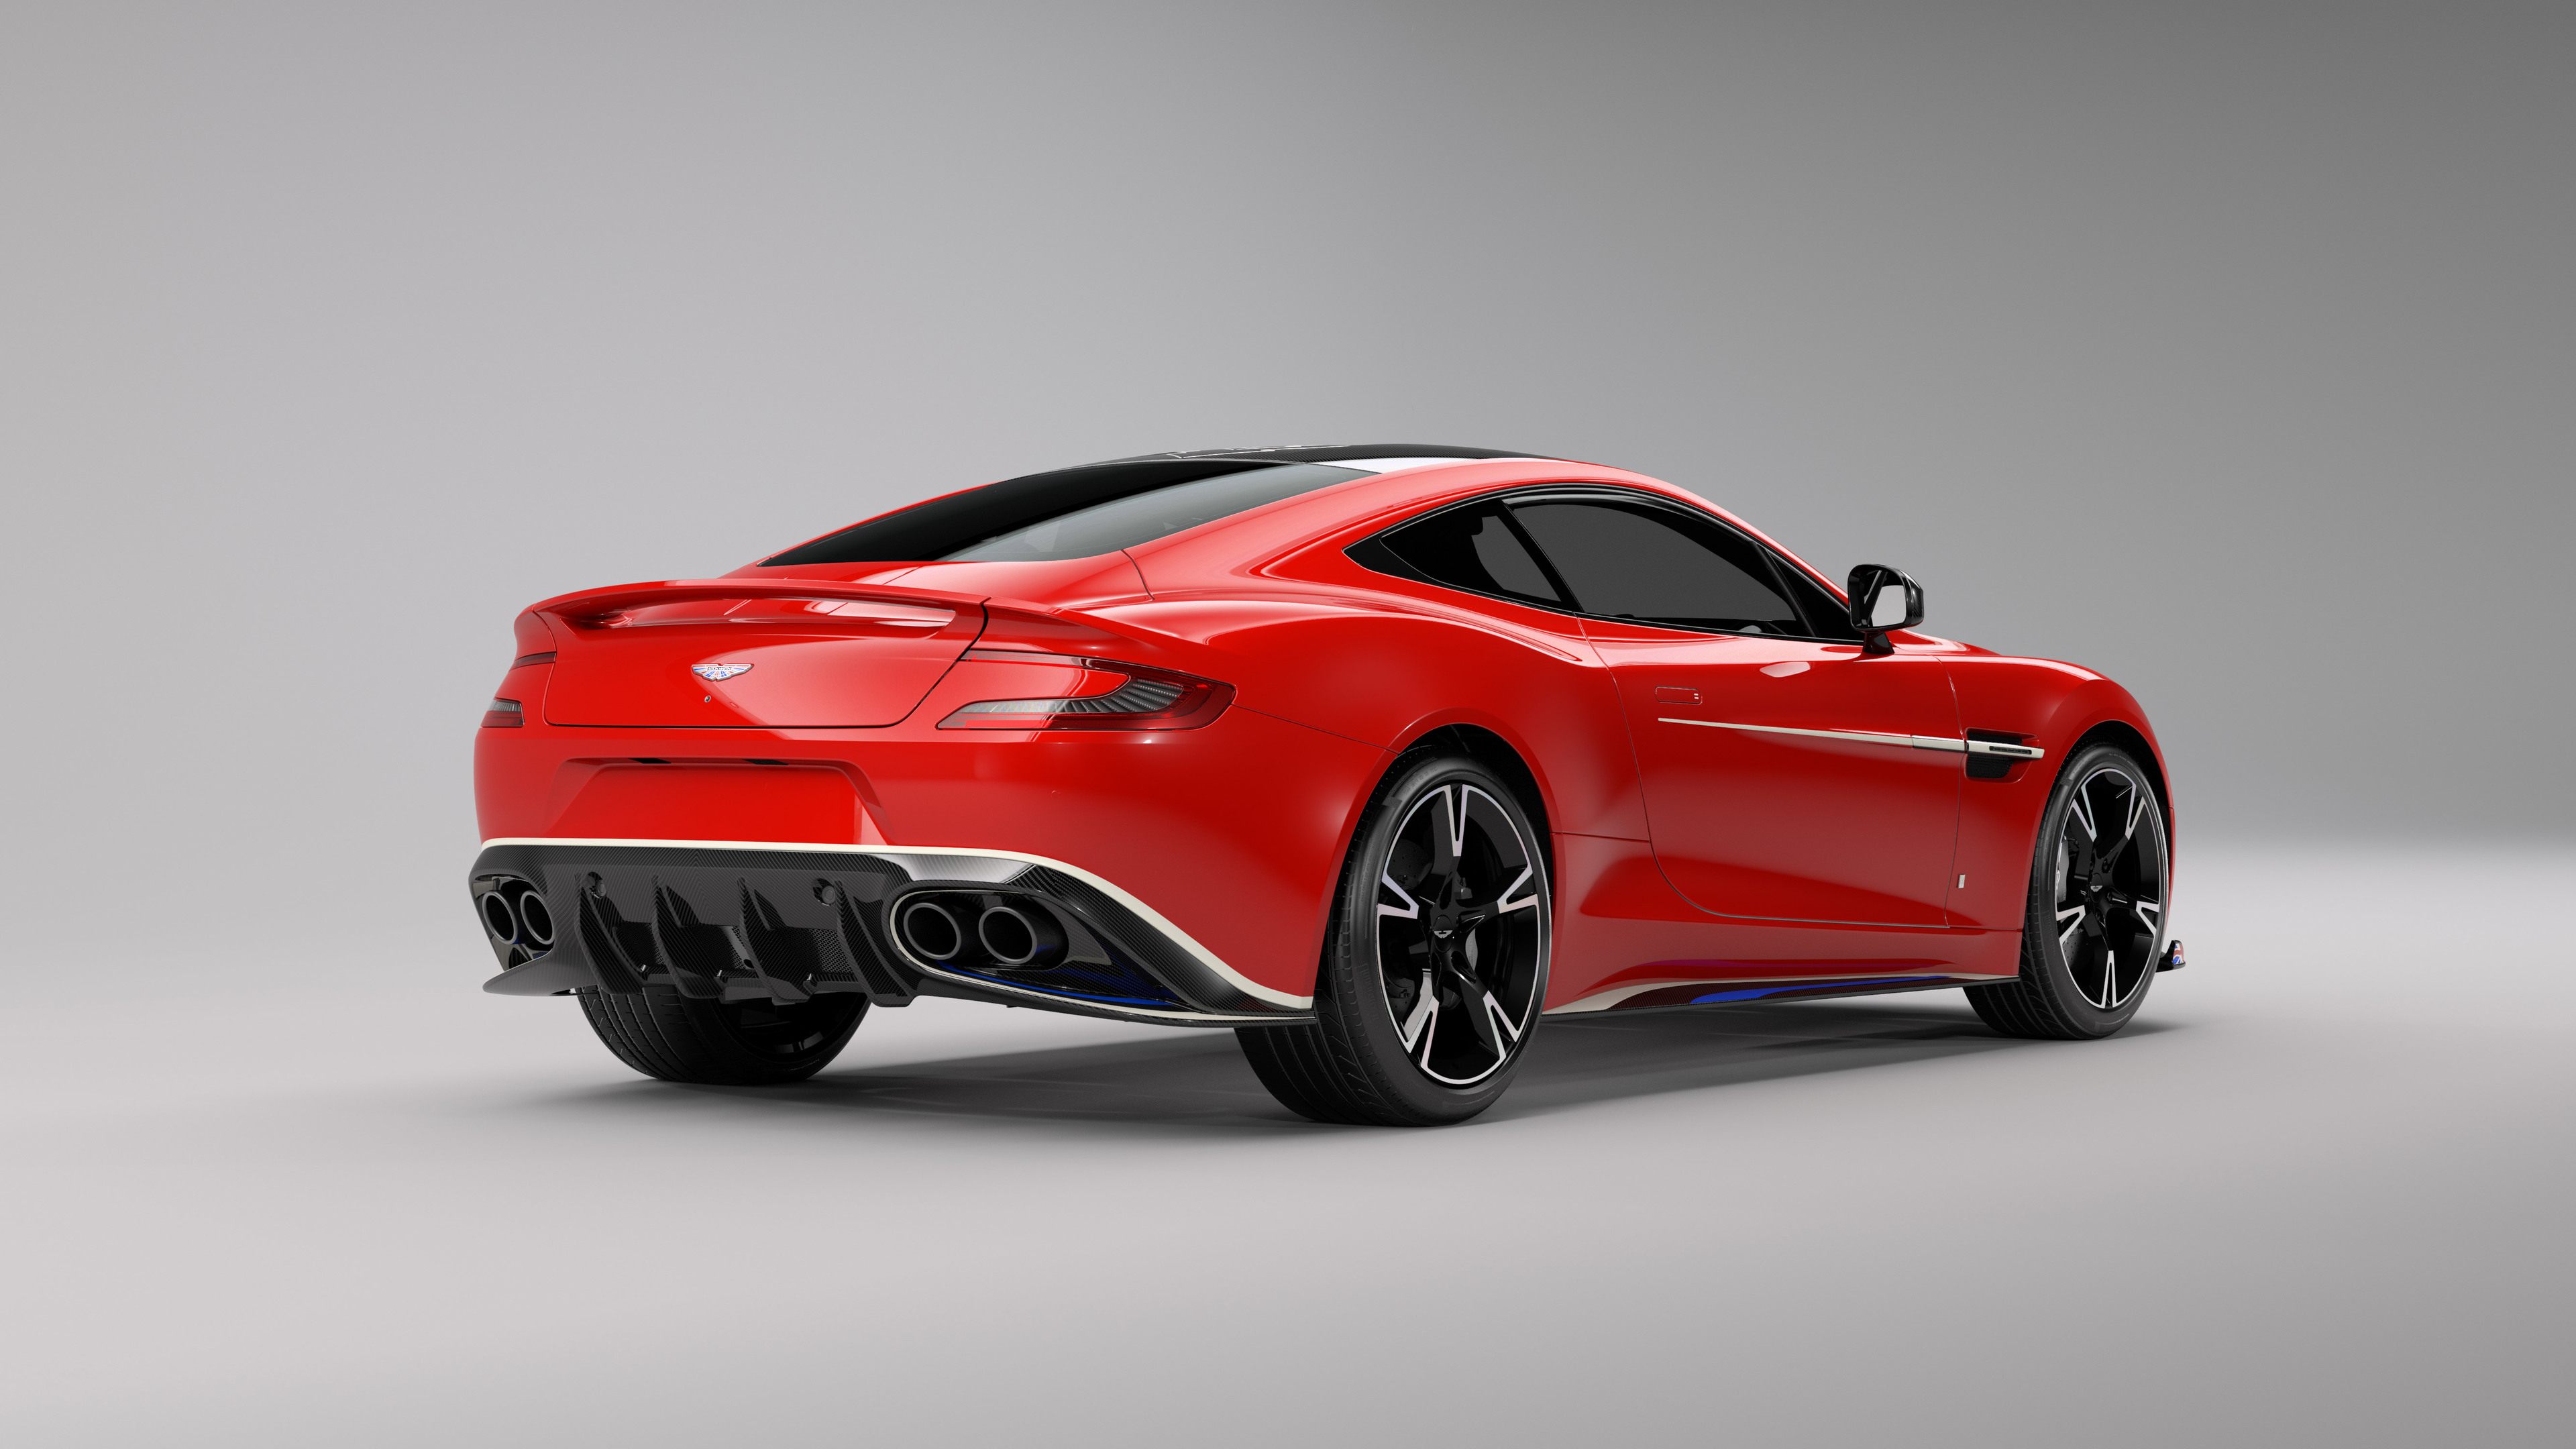 aston martin vanquish s red arrows edition 2017 1539105163 - Aston Martin Vanquish S Red Arrows Edition 2017 - hd-wallpapers, cars wallpapers, aston martin wallpapers, 5k wallpapers, 4k-wallpapers, 2017 cars wallpapers